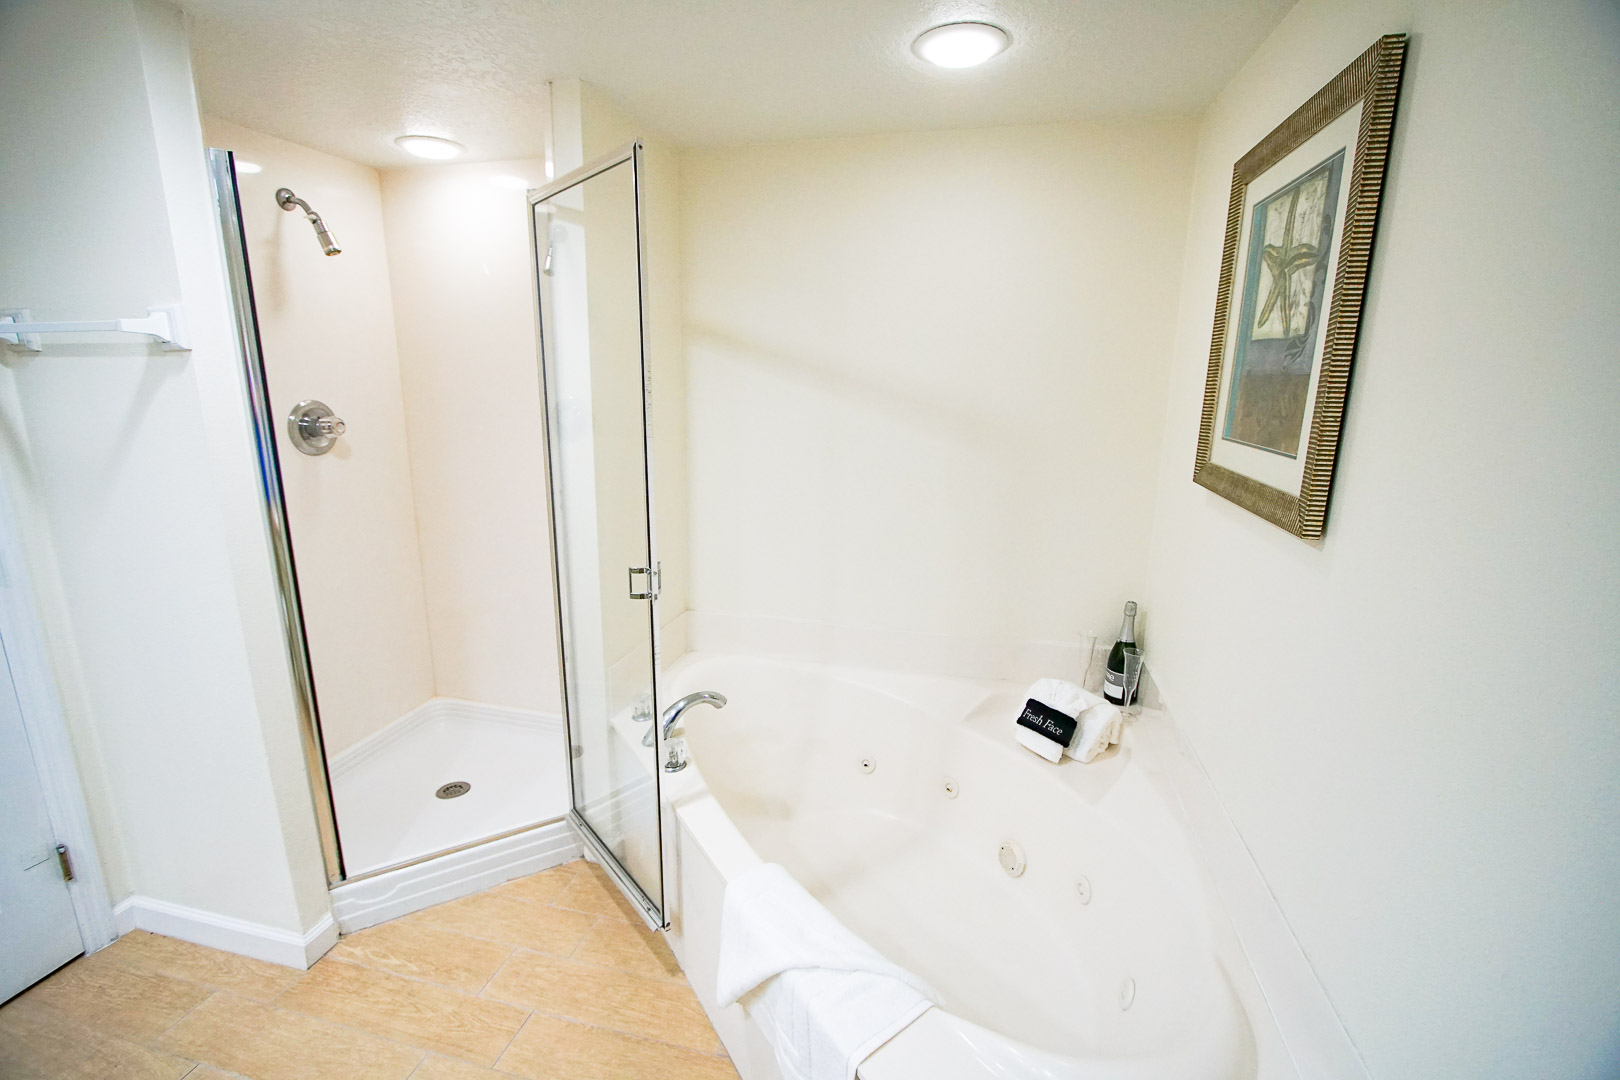 A refreshing bathroom with shower and jacuzzi tub at VRI's The Resort on Cocoa Beach in Florida.